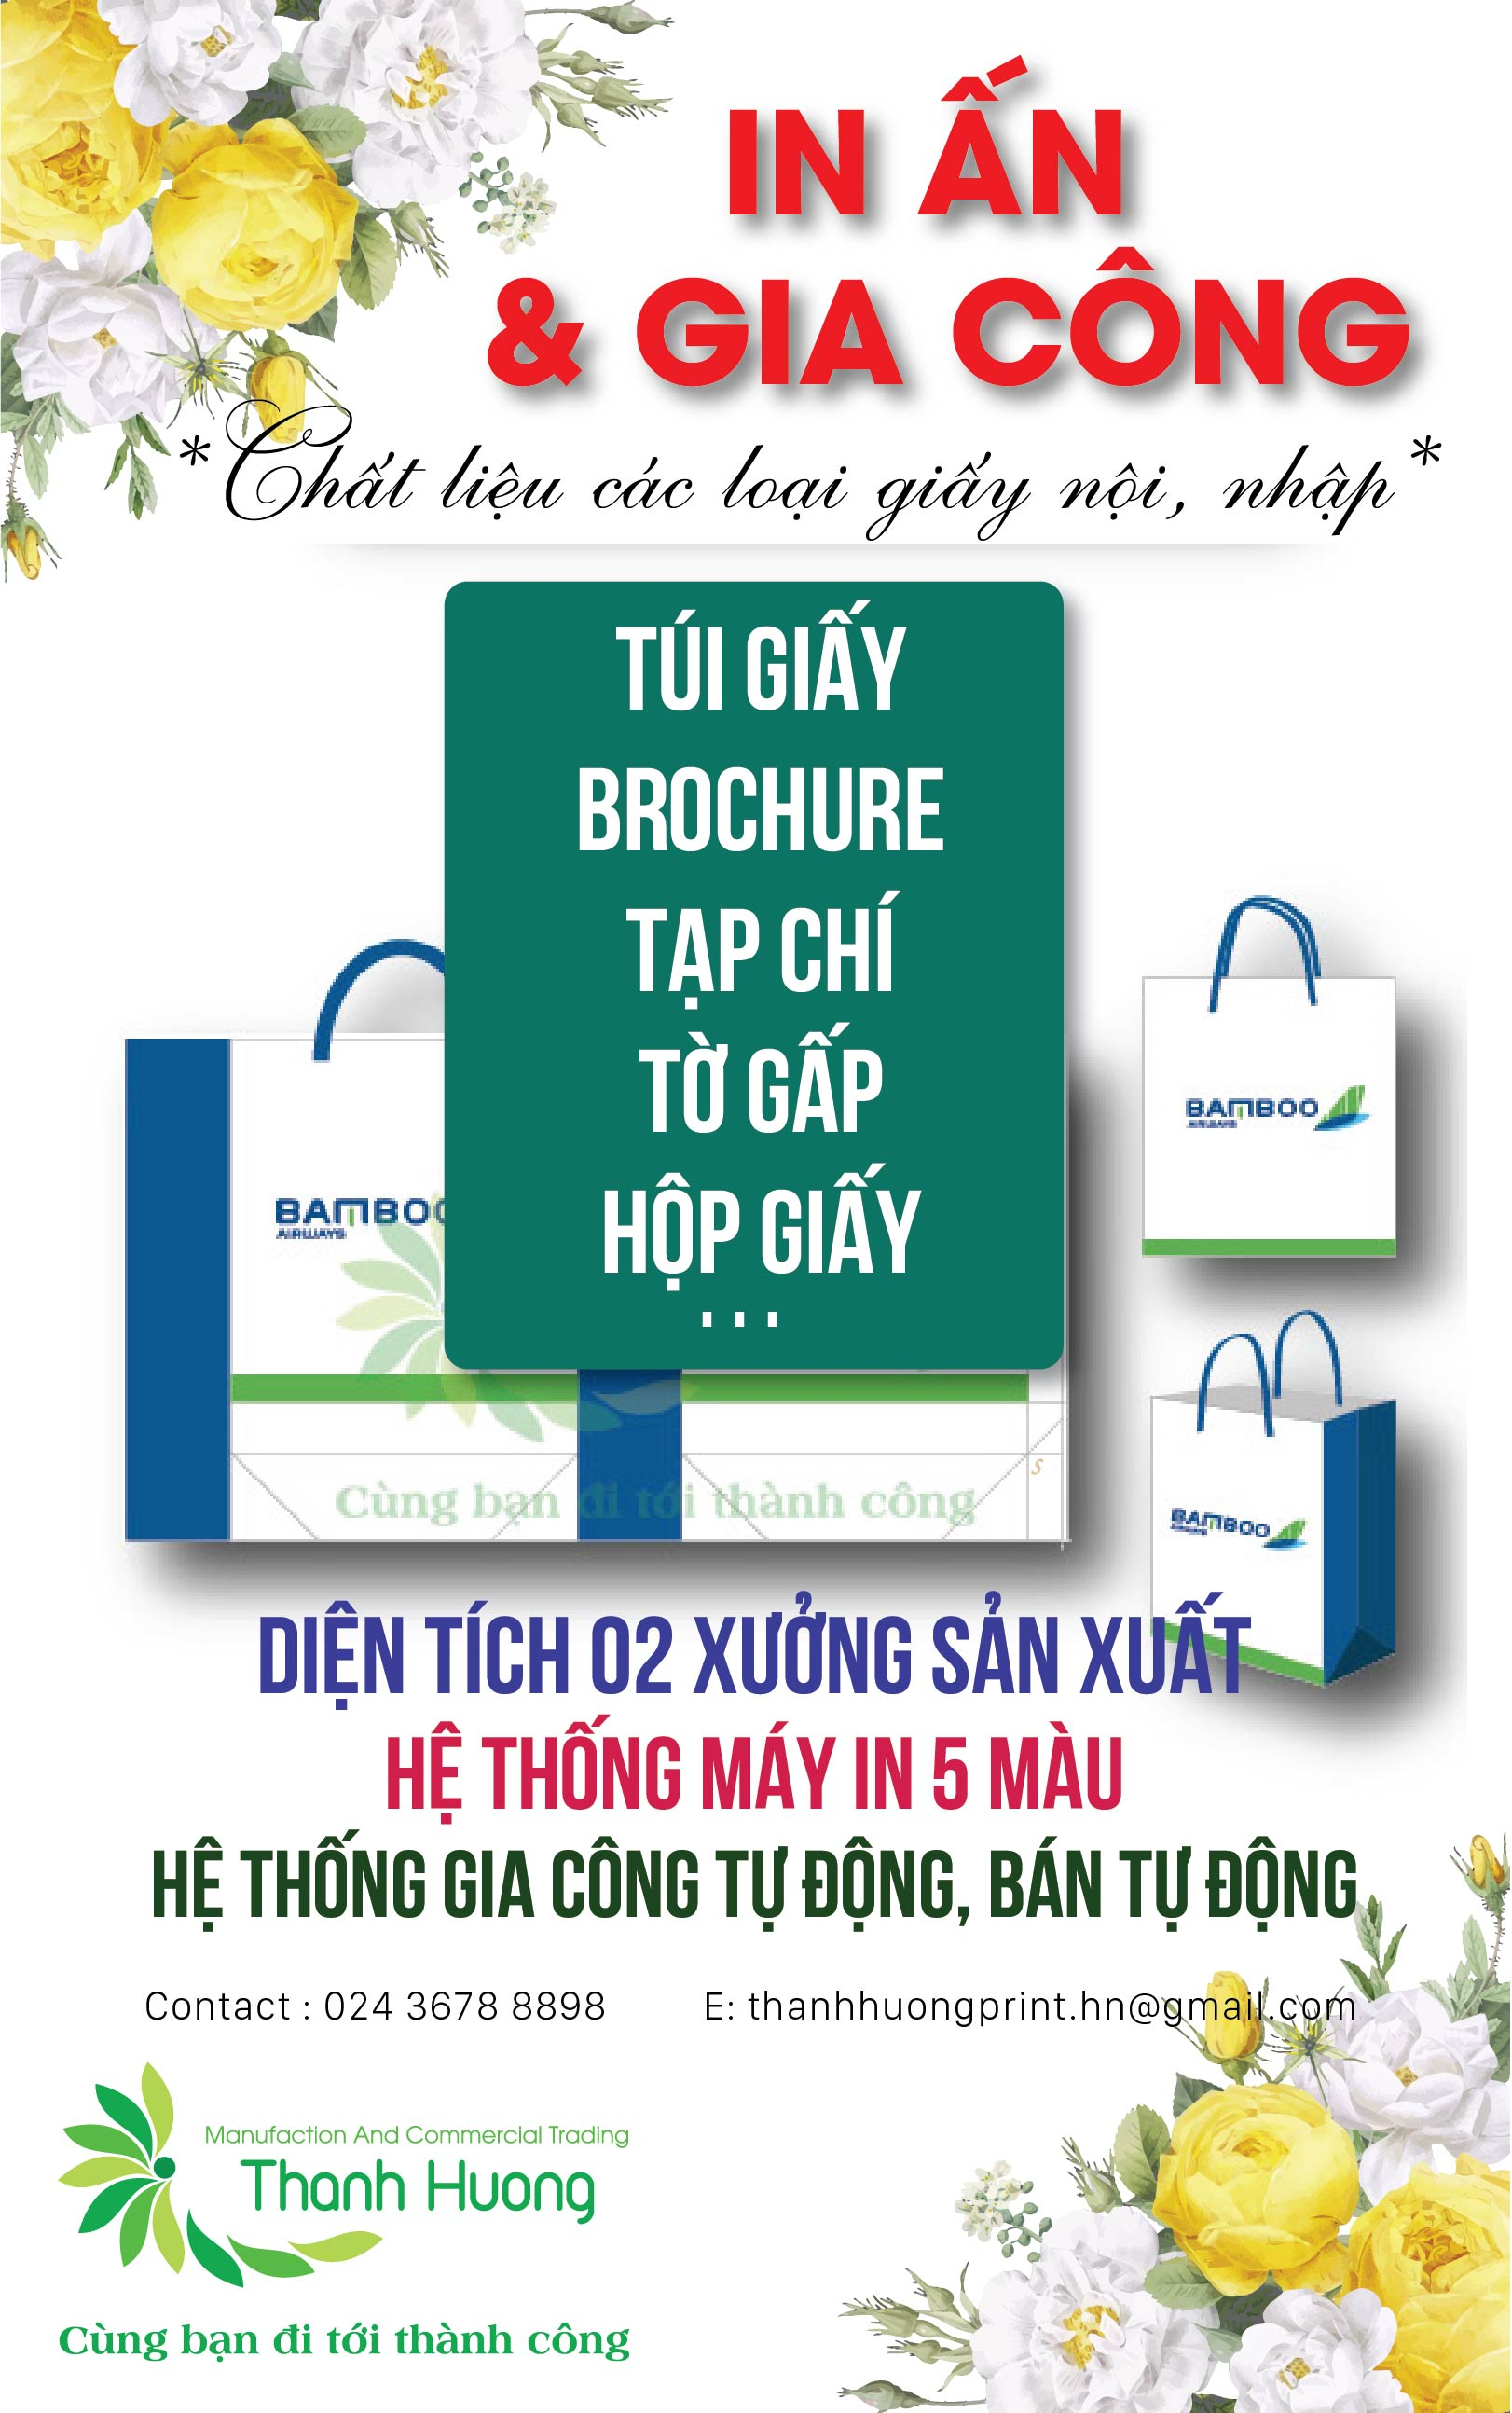 inthanhhuong.vn